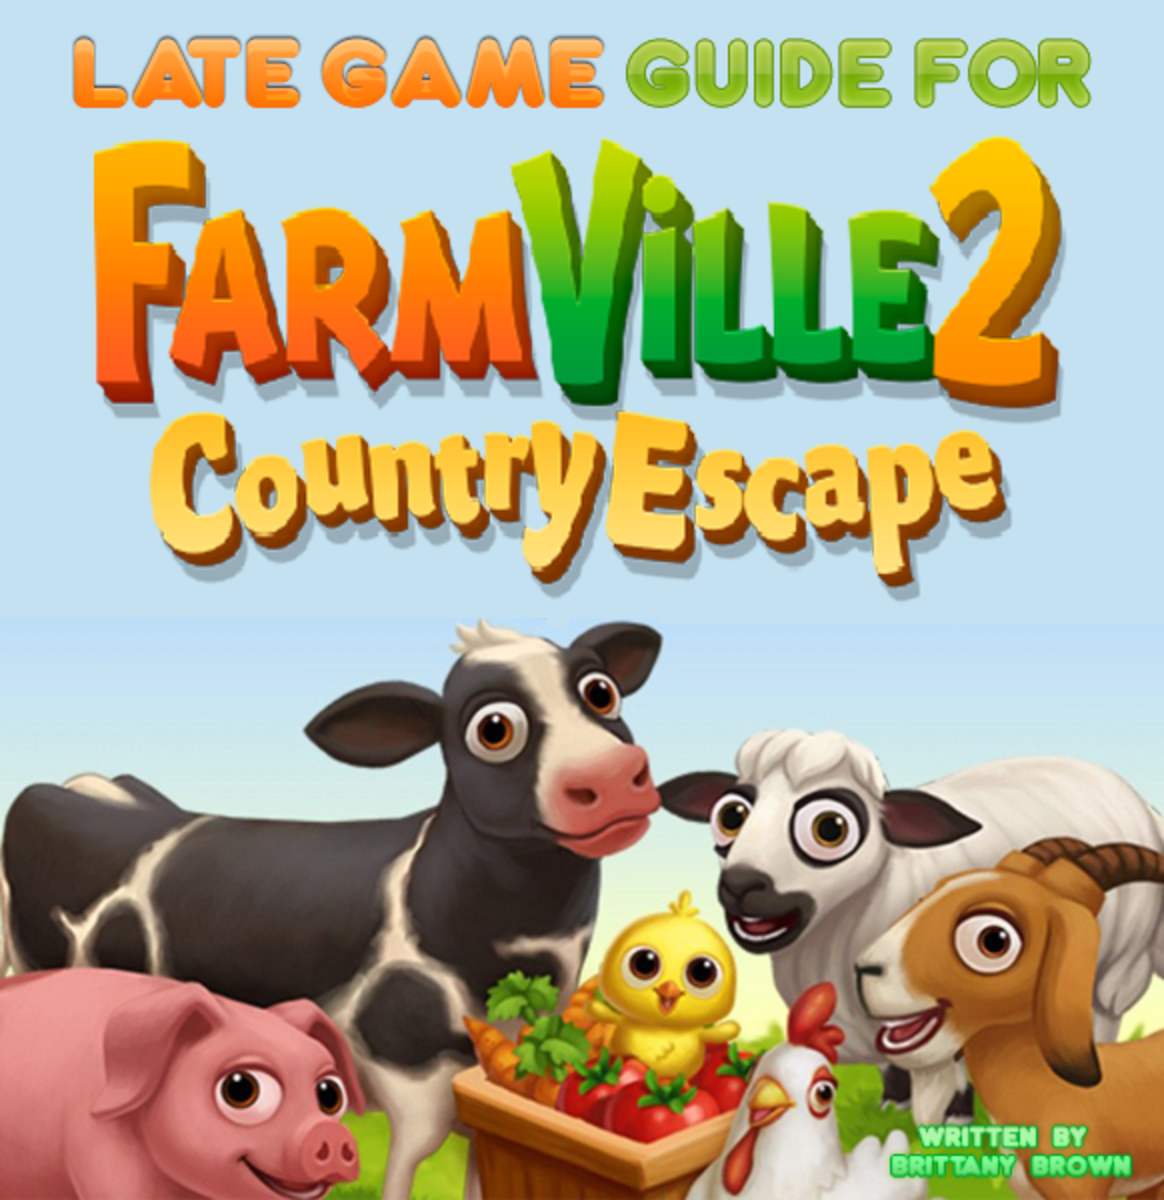 A guide filled with tips, cheats, tricks and hints for playing Farmville 2: Country Escape!